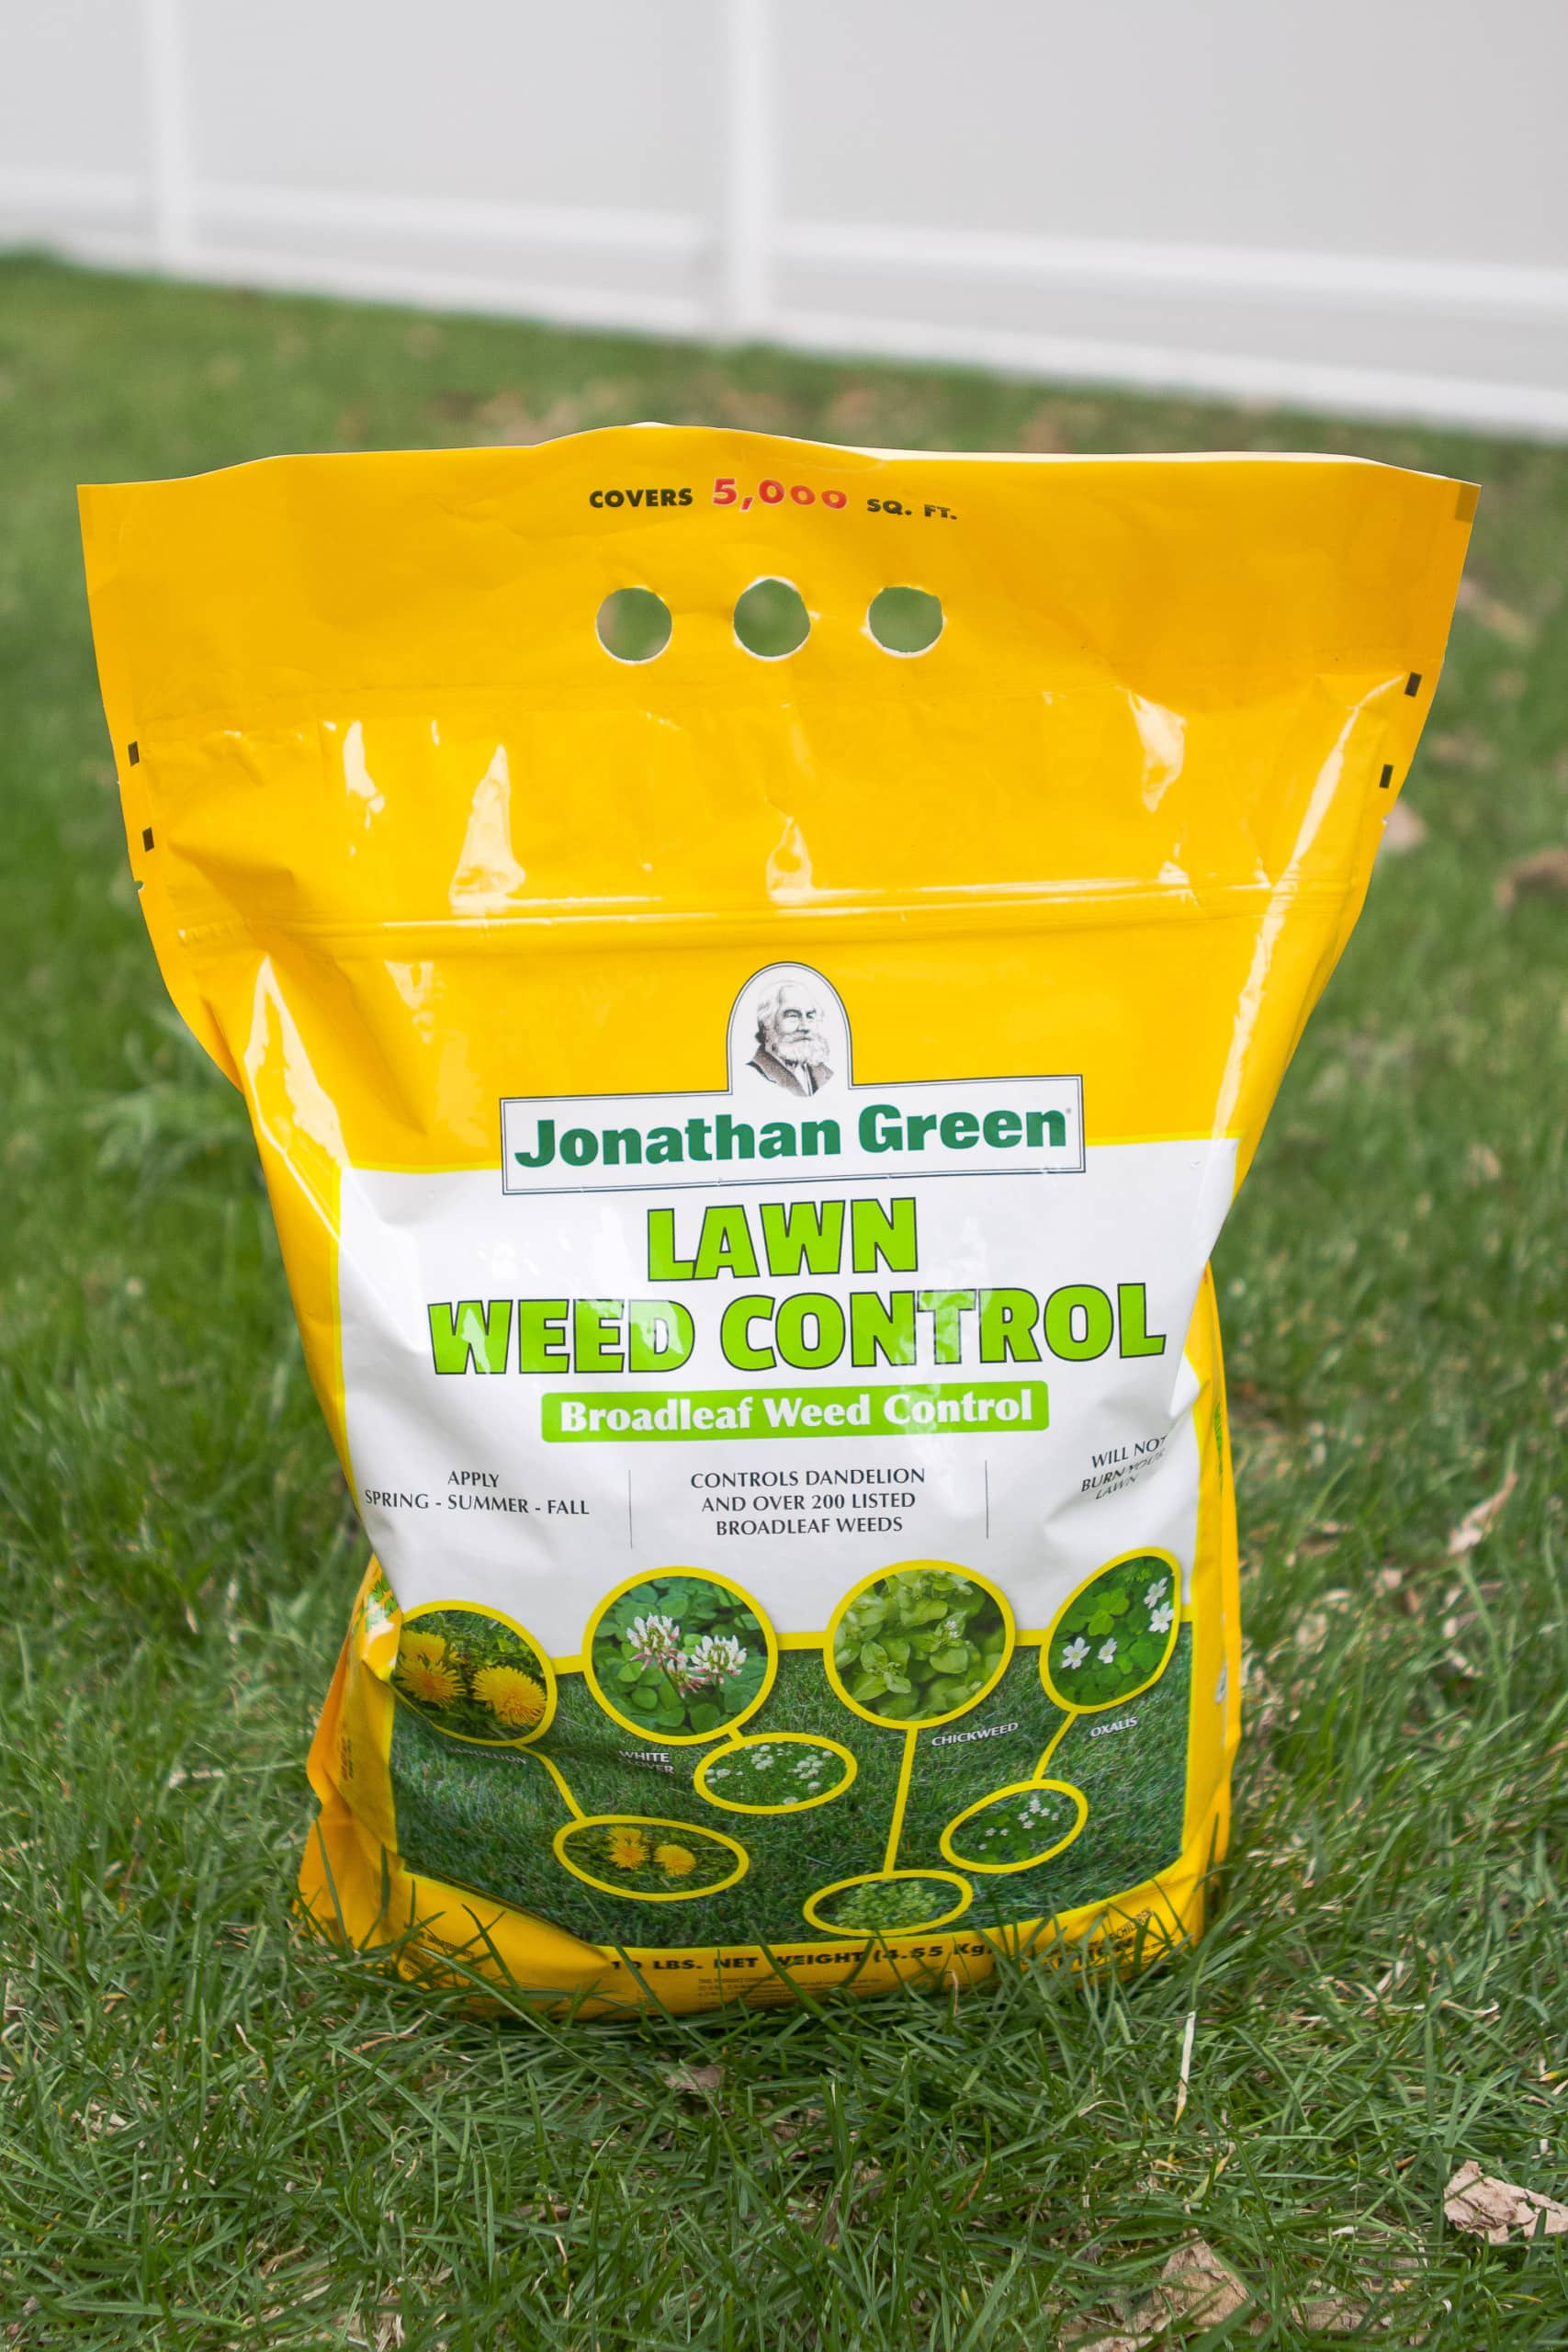 Use weed control to prep your lawn for spring